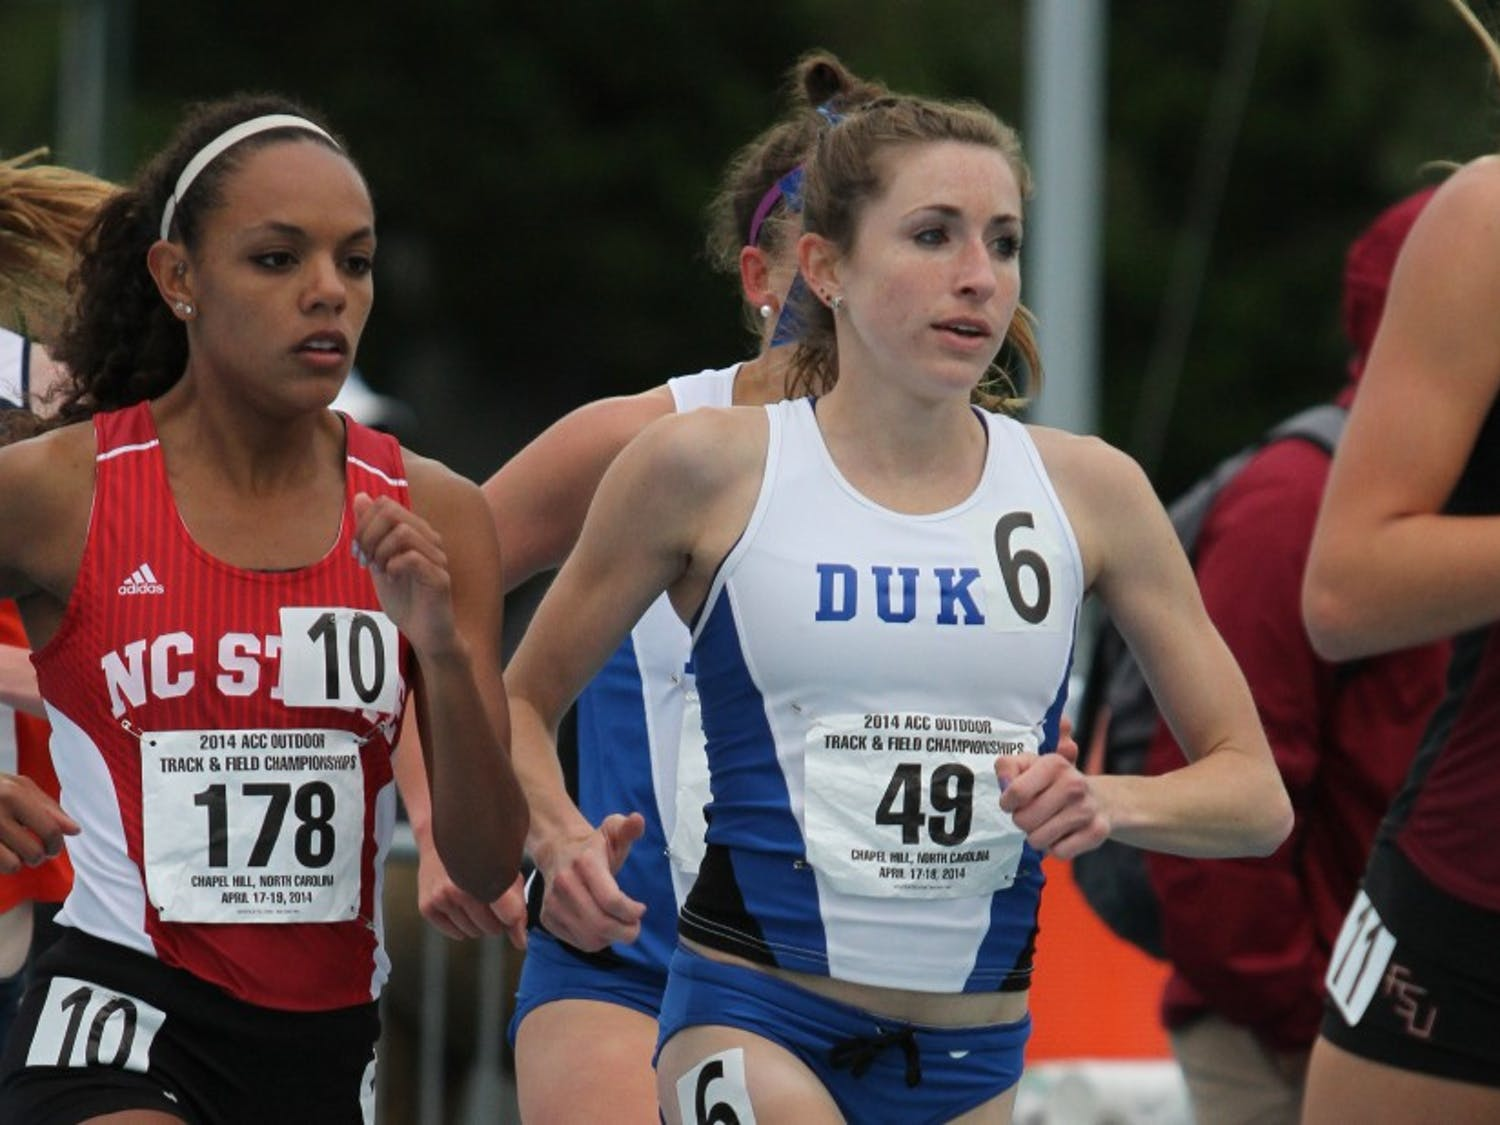 Duke will look to close out the last two weeks of the season by qualifying as many runners as possible for the postseason.